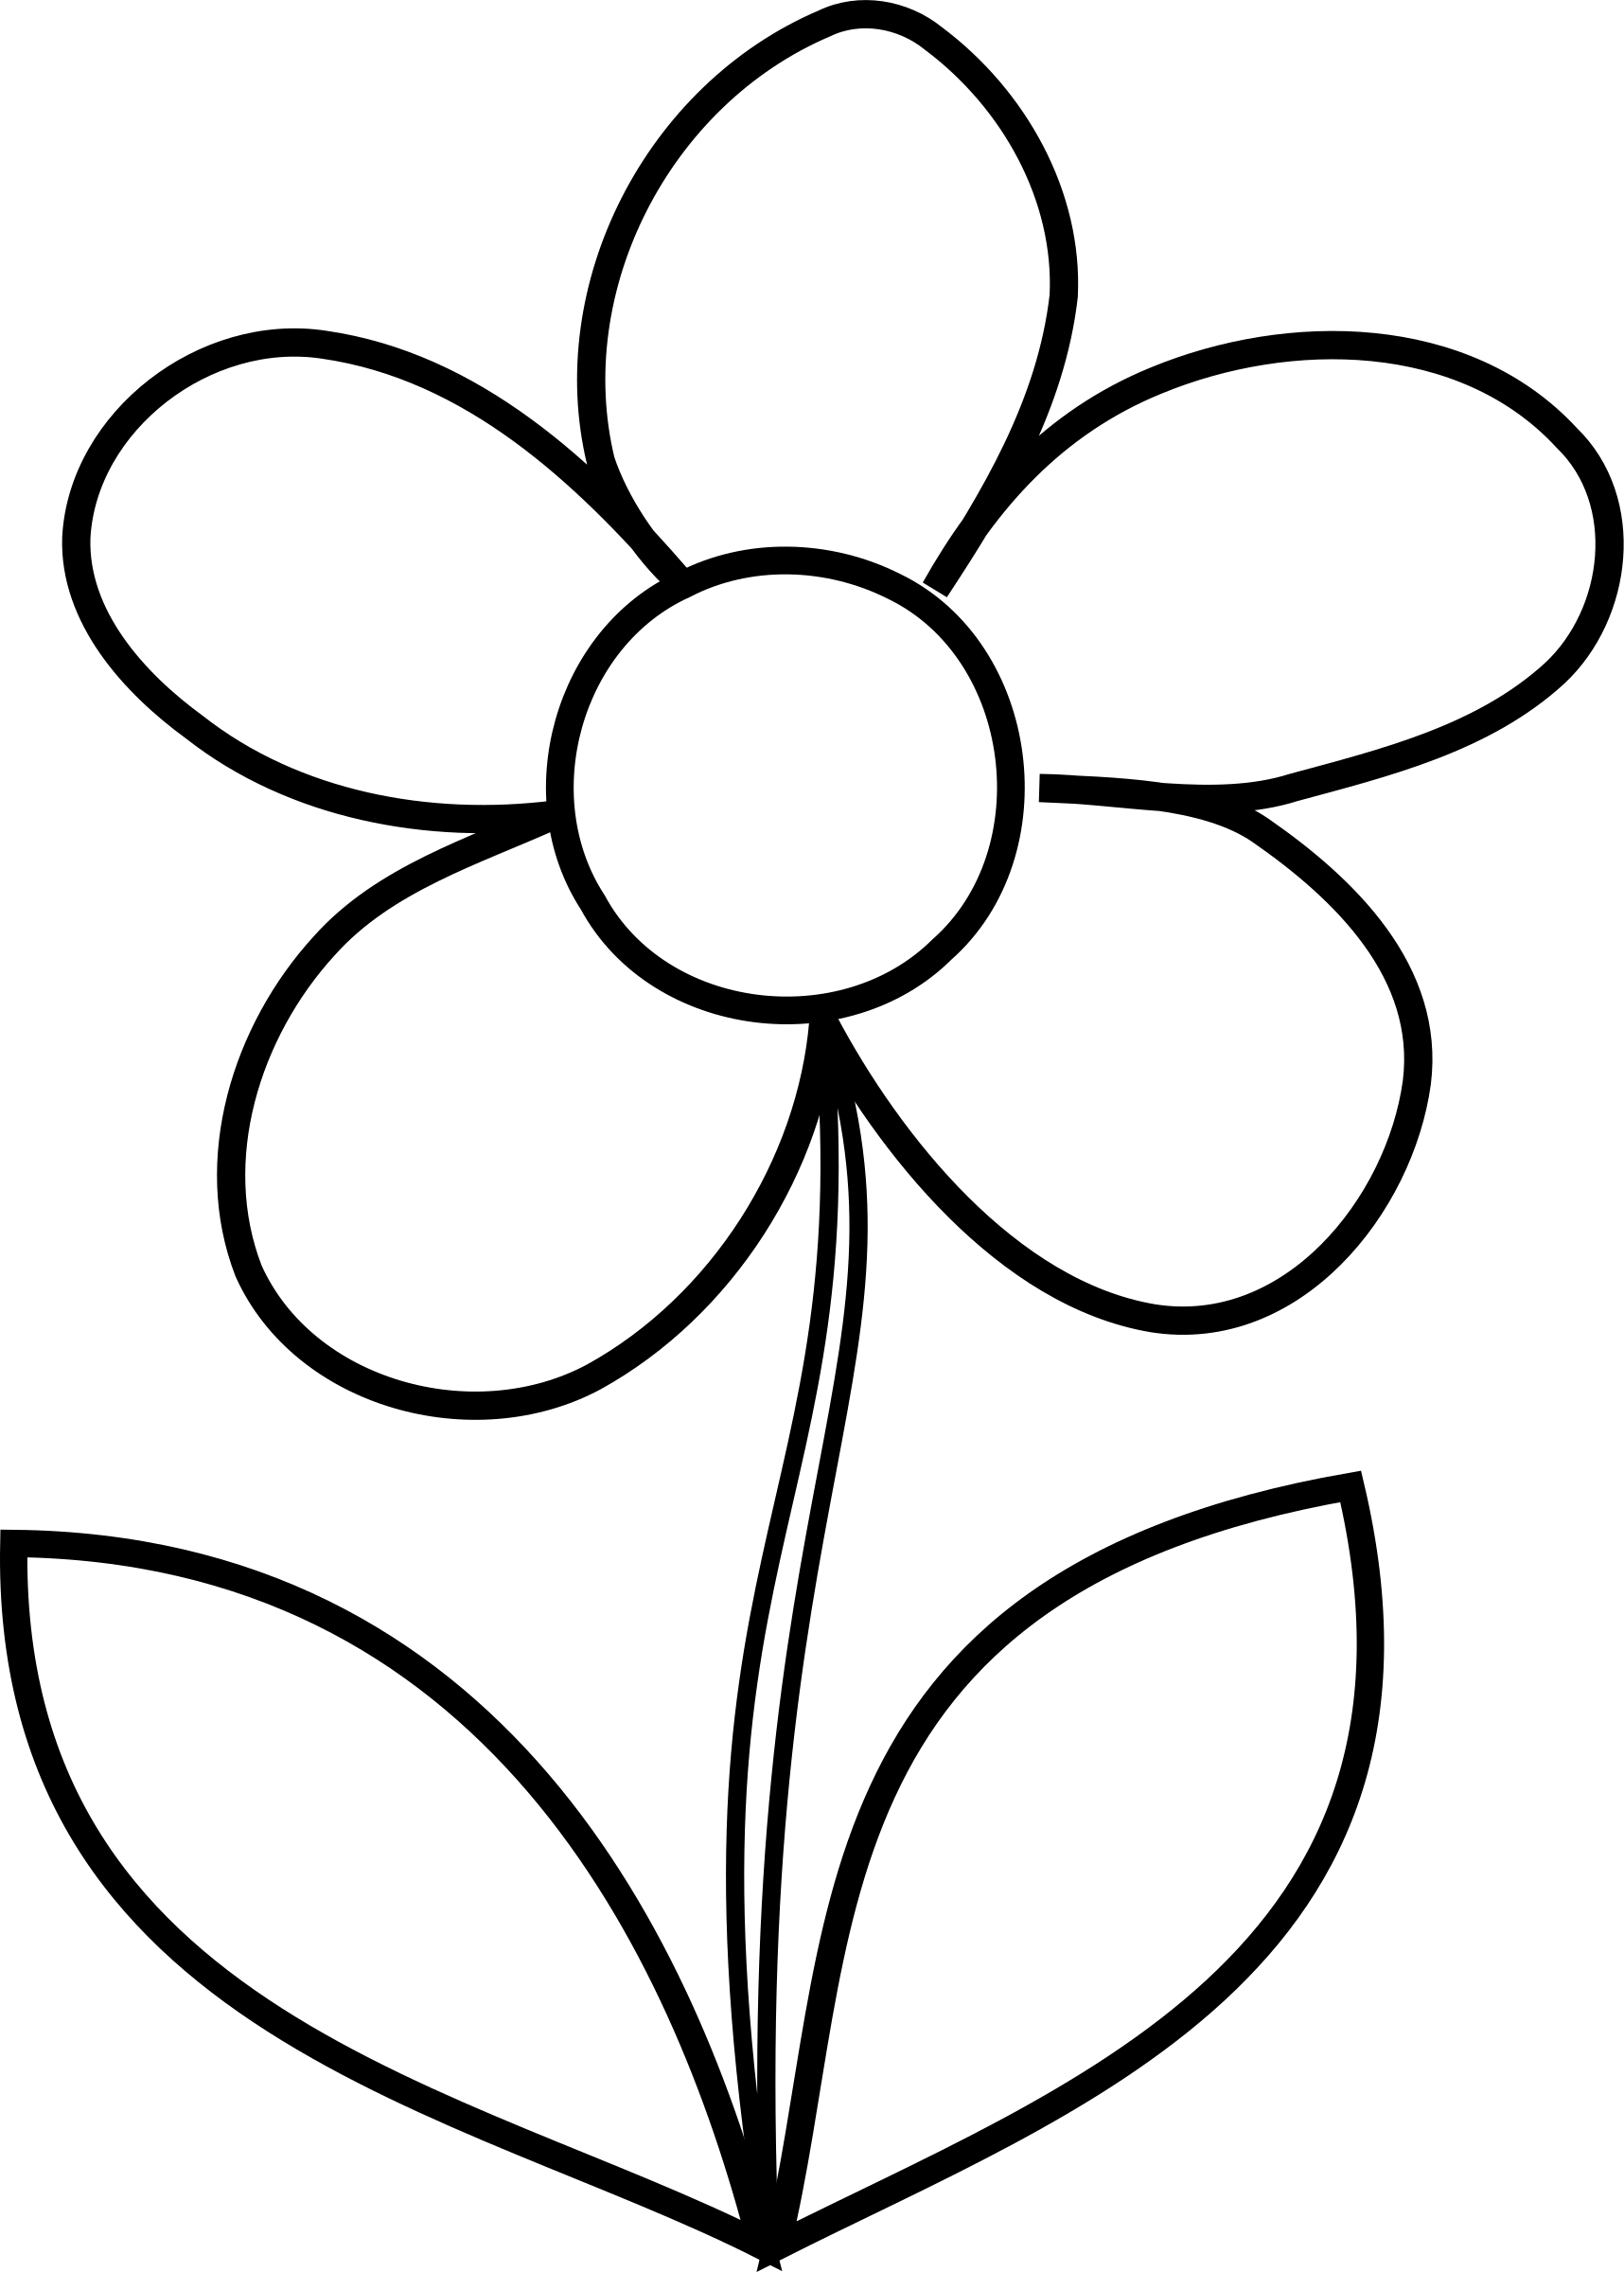 Simple Flower Bw By Malenki Simple Flower From Hakanl In Black And White To Be Colo Printable Flower Coloring Pages Flower Printable Printable Coloring Pages